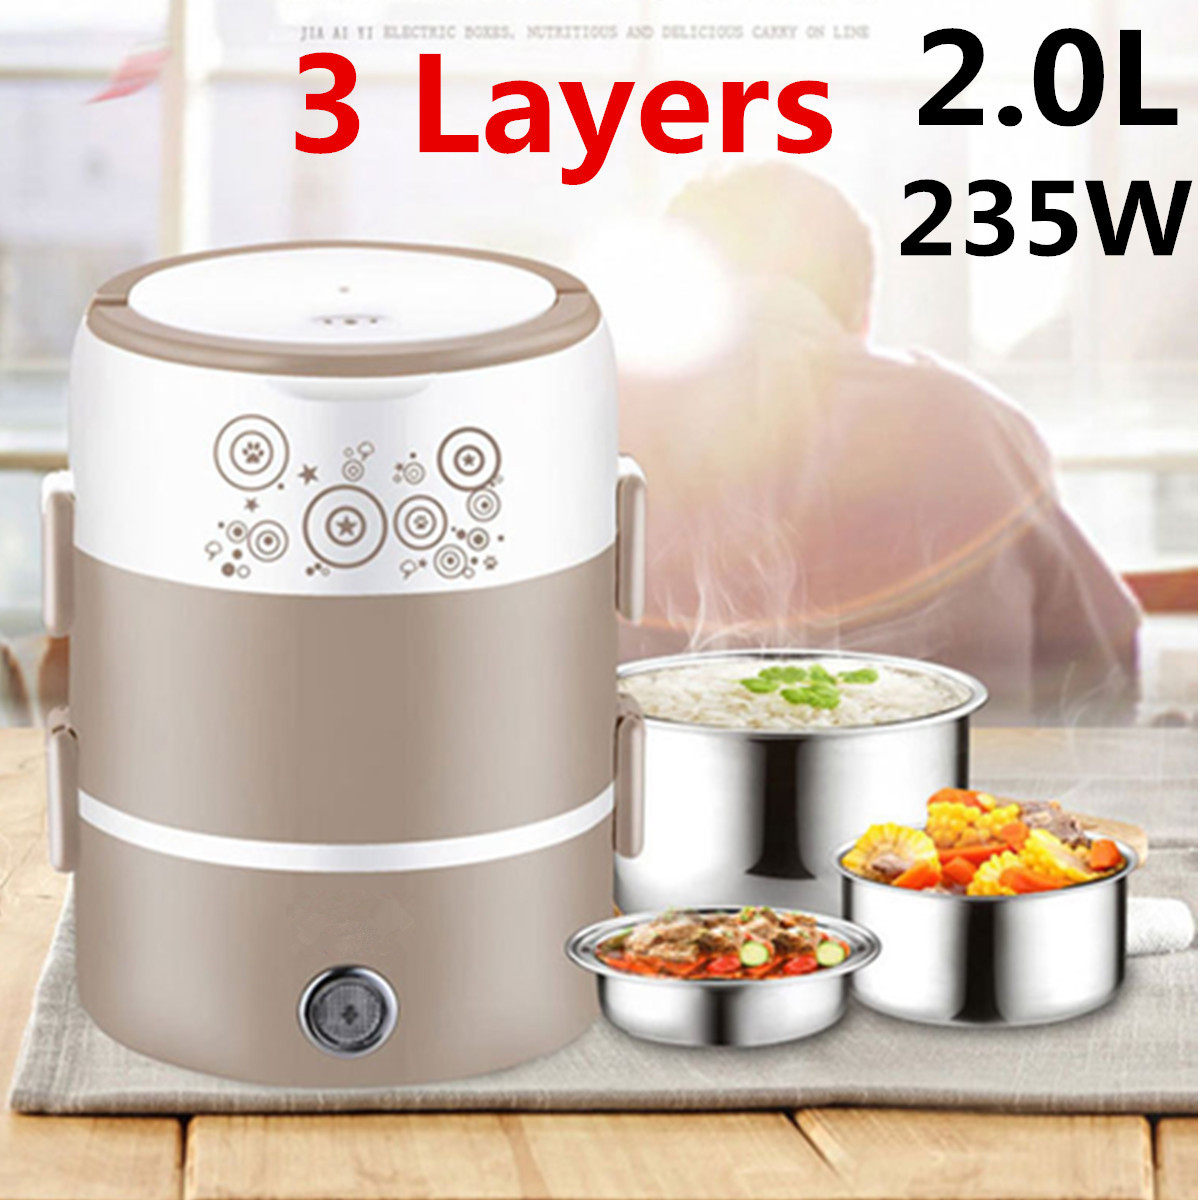 3 Layer 2L Electric Lunch Box Auto-Off 220V Stainless Steel Heater Food Warmer Heating Container Insulation School Bento Box